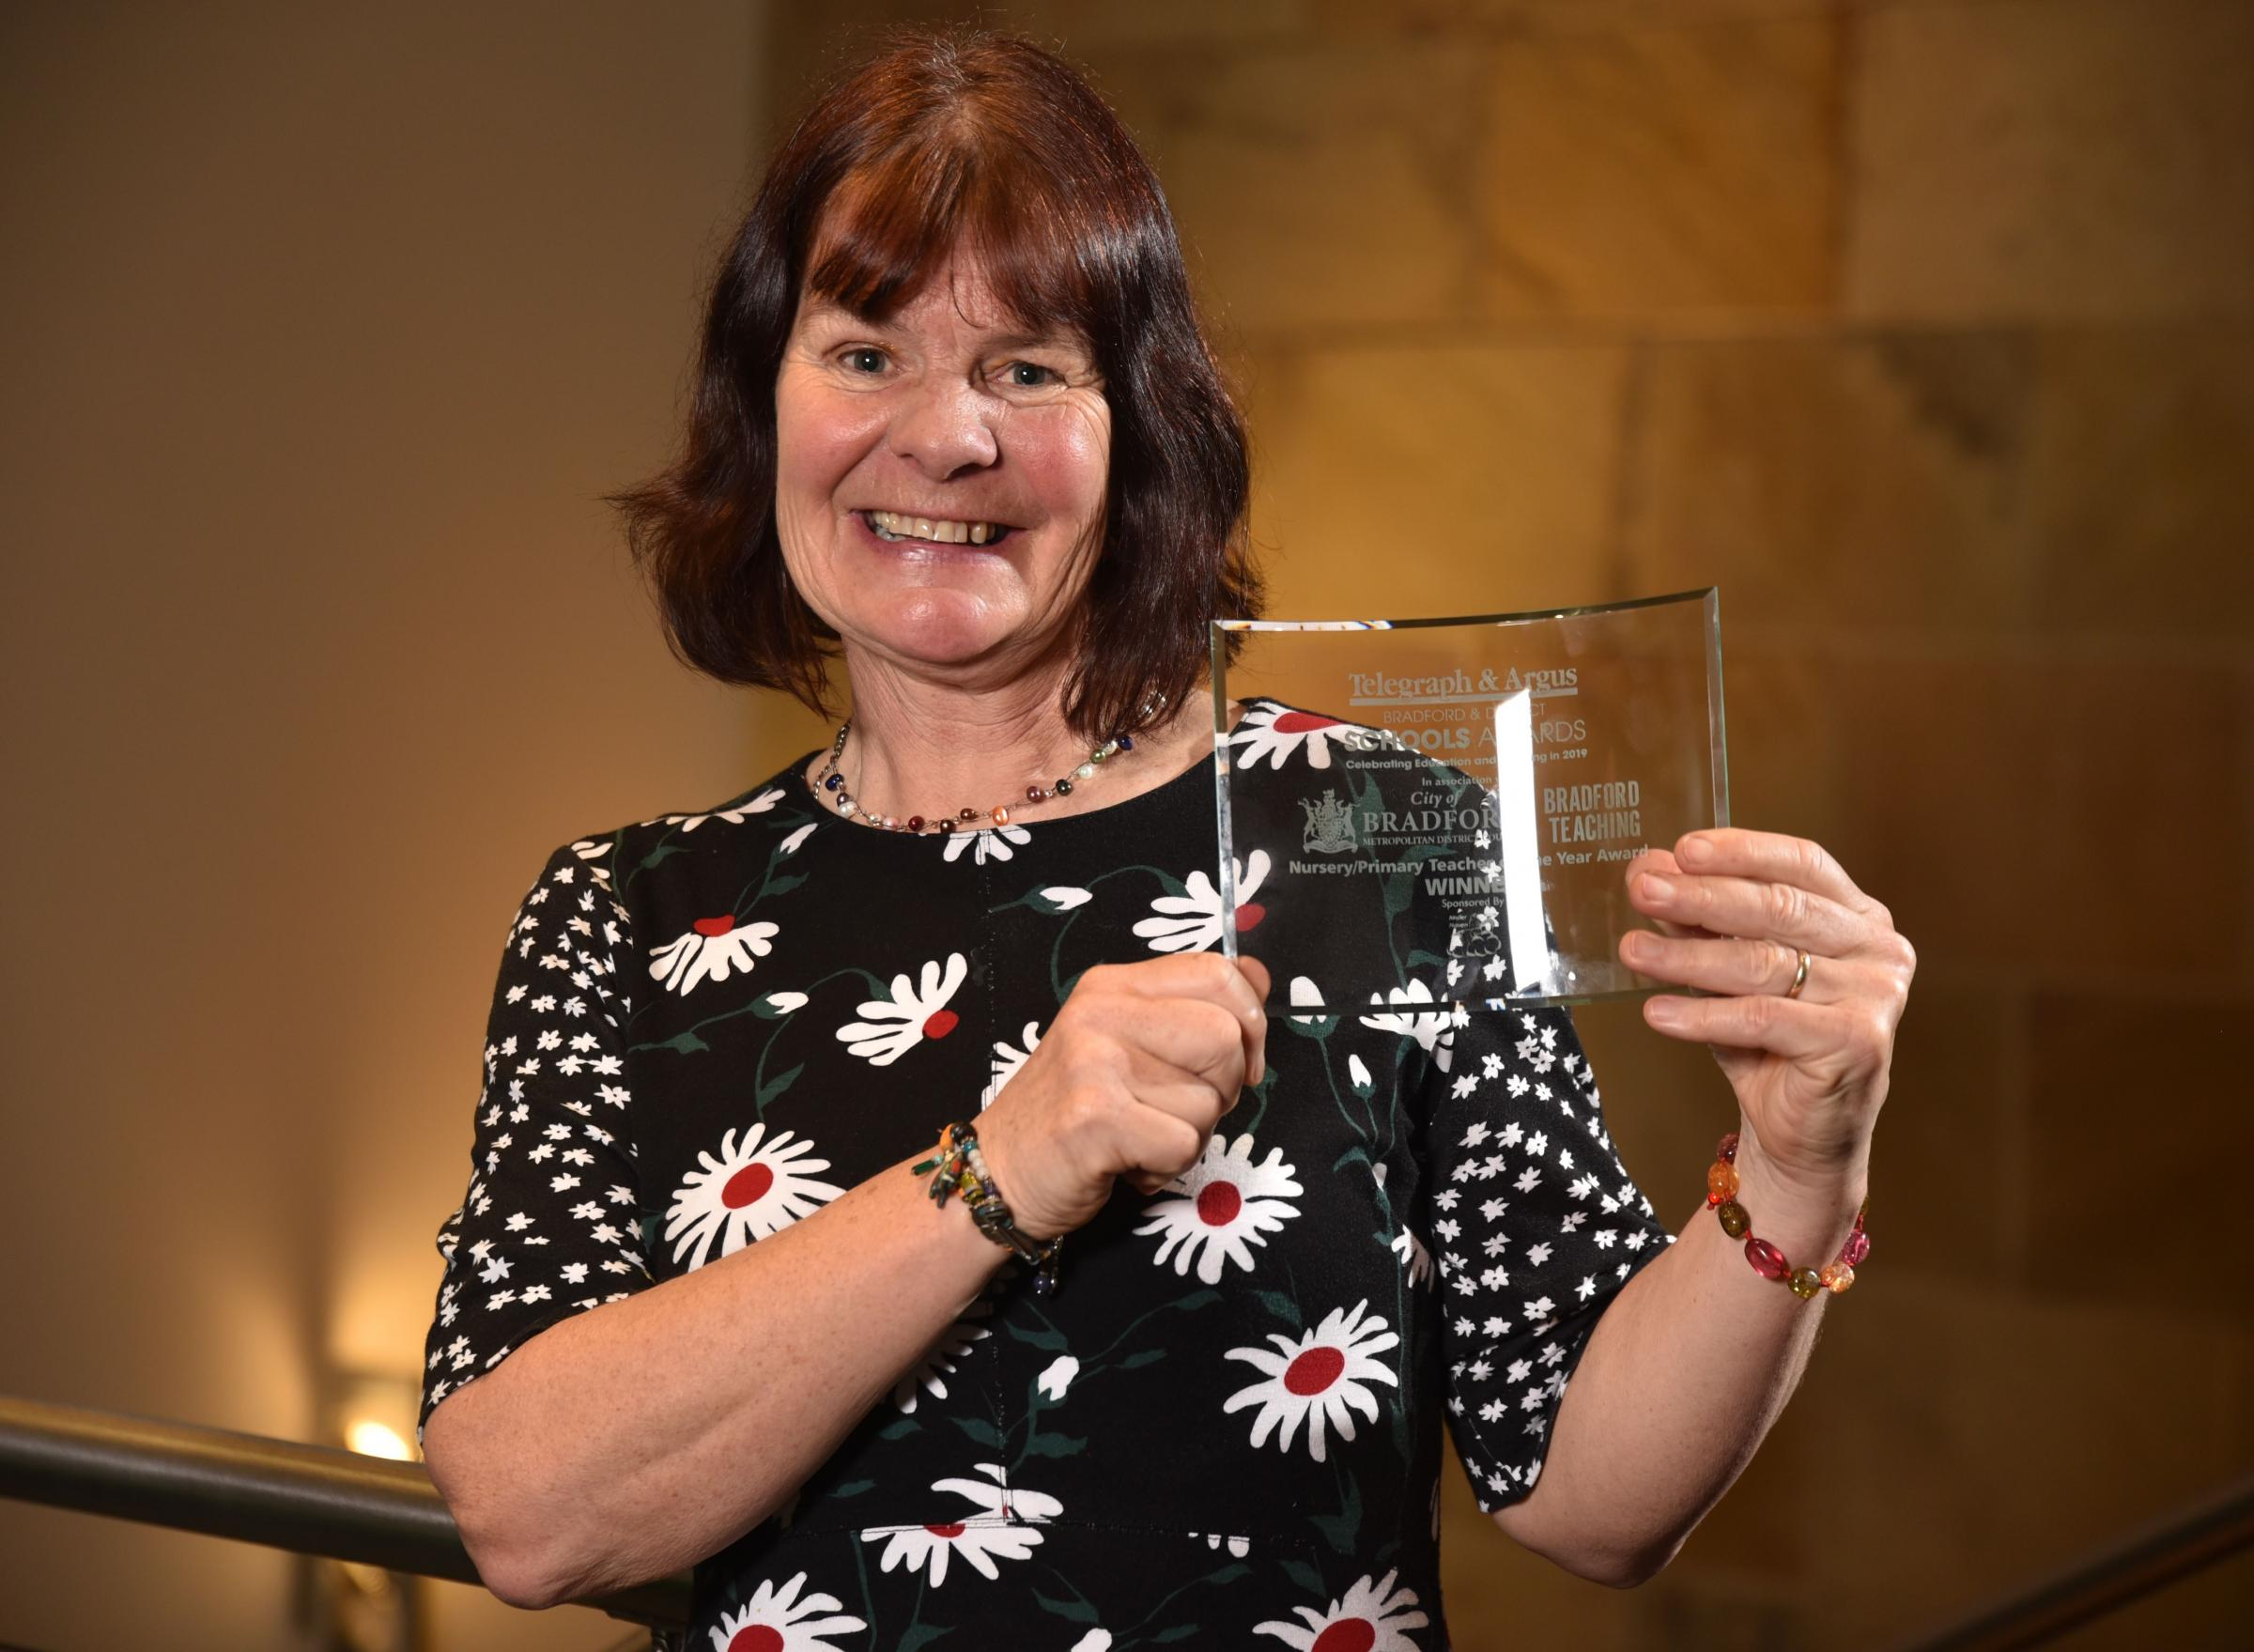 Sue Roberts of Haworth Primary wins Nursery/Primary Teacher of the Year